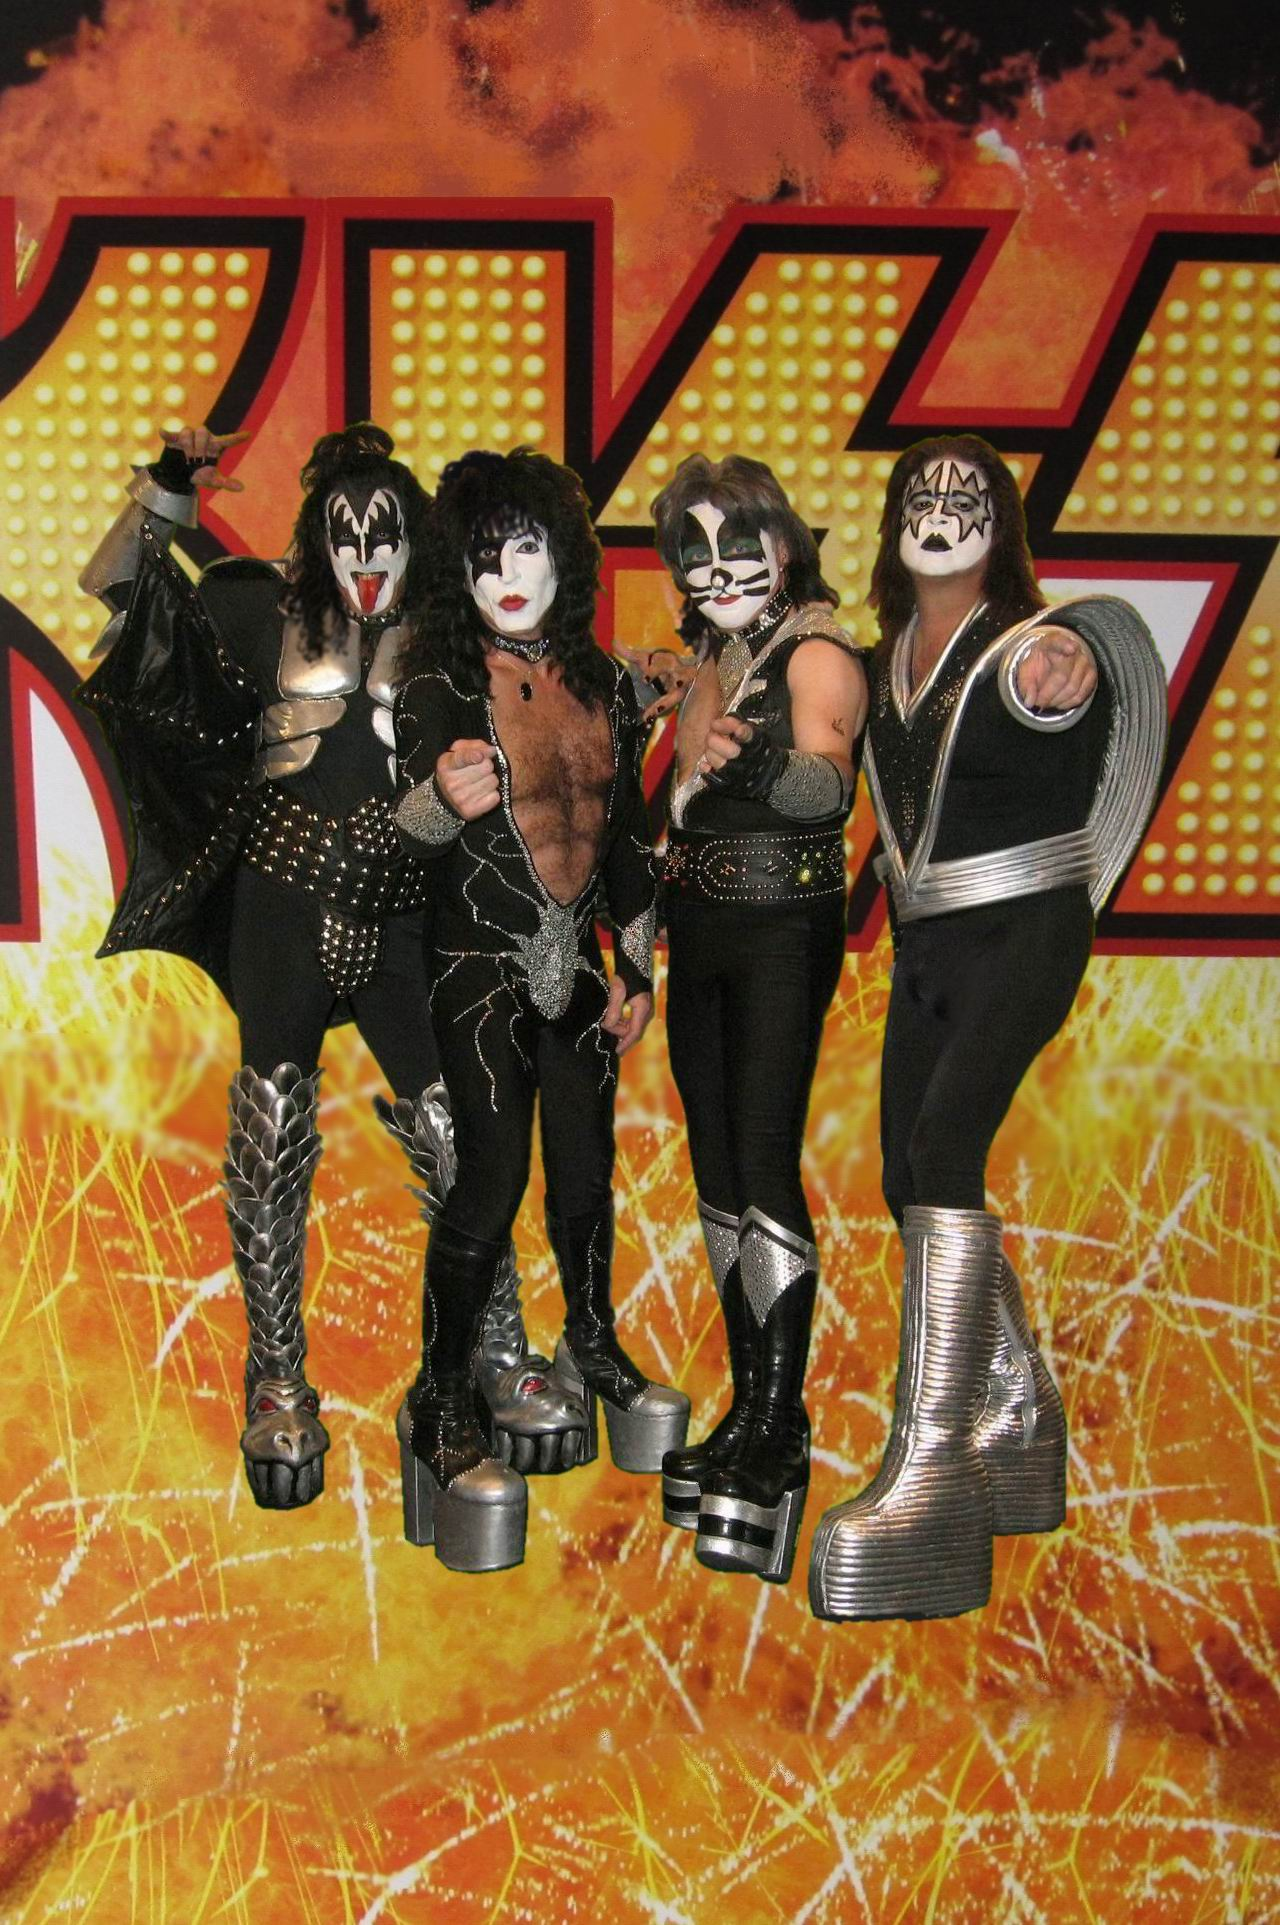 Las Vegas Platinum KISS promo pic, click to enlarge